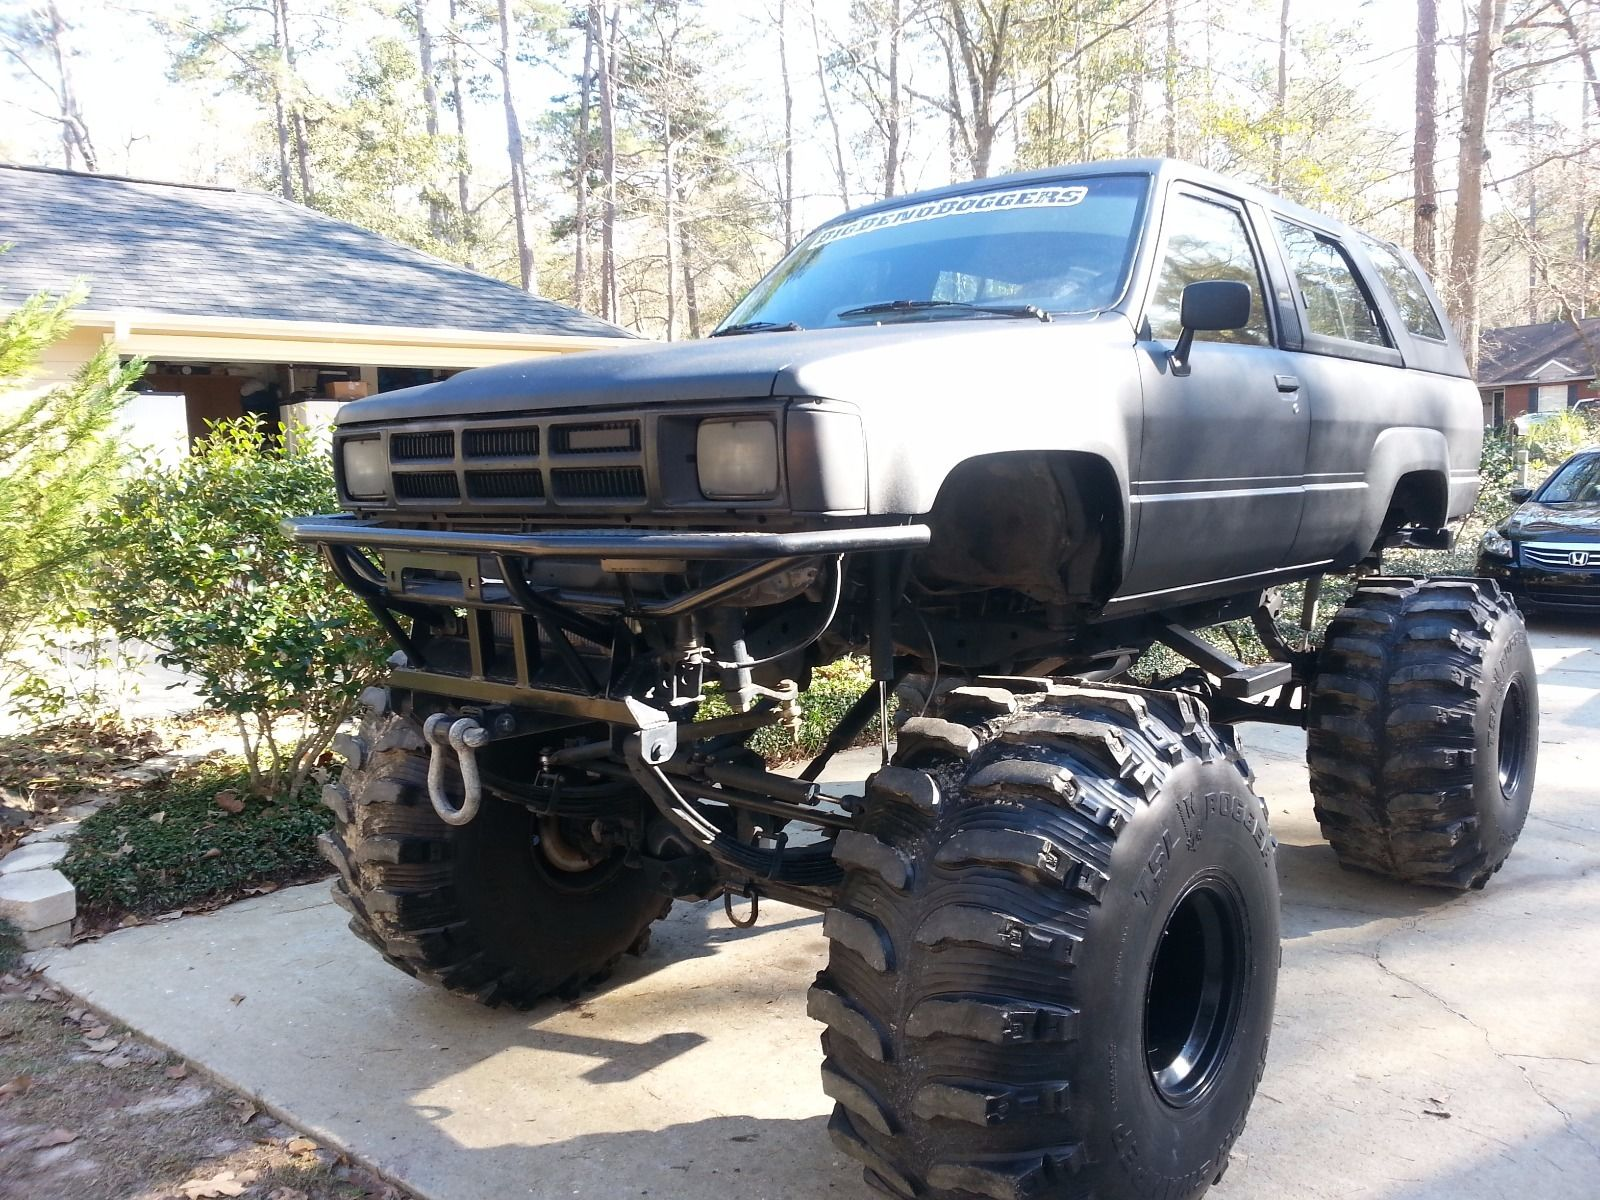 1985 toyota 4 runner sr5 monster bog truck for sale. Black Bedroom Furniture Sets. Home Design Ideas